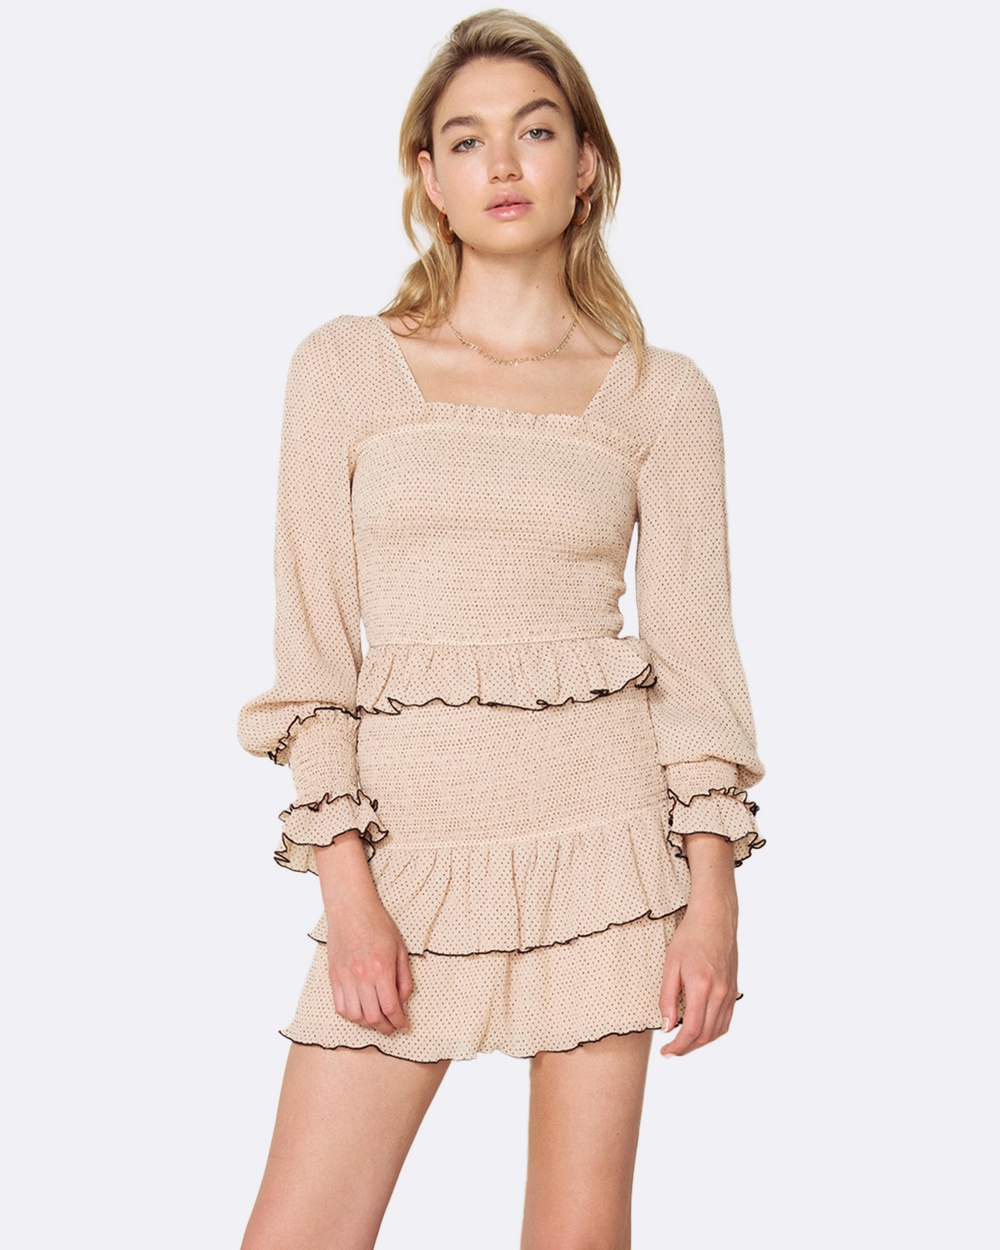 The East Order Chloe Top Tops Nude Chloe Top